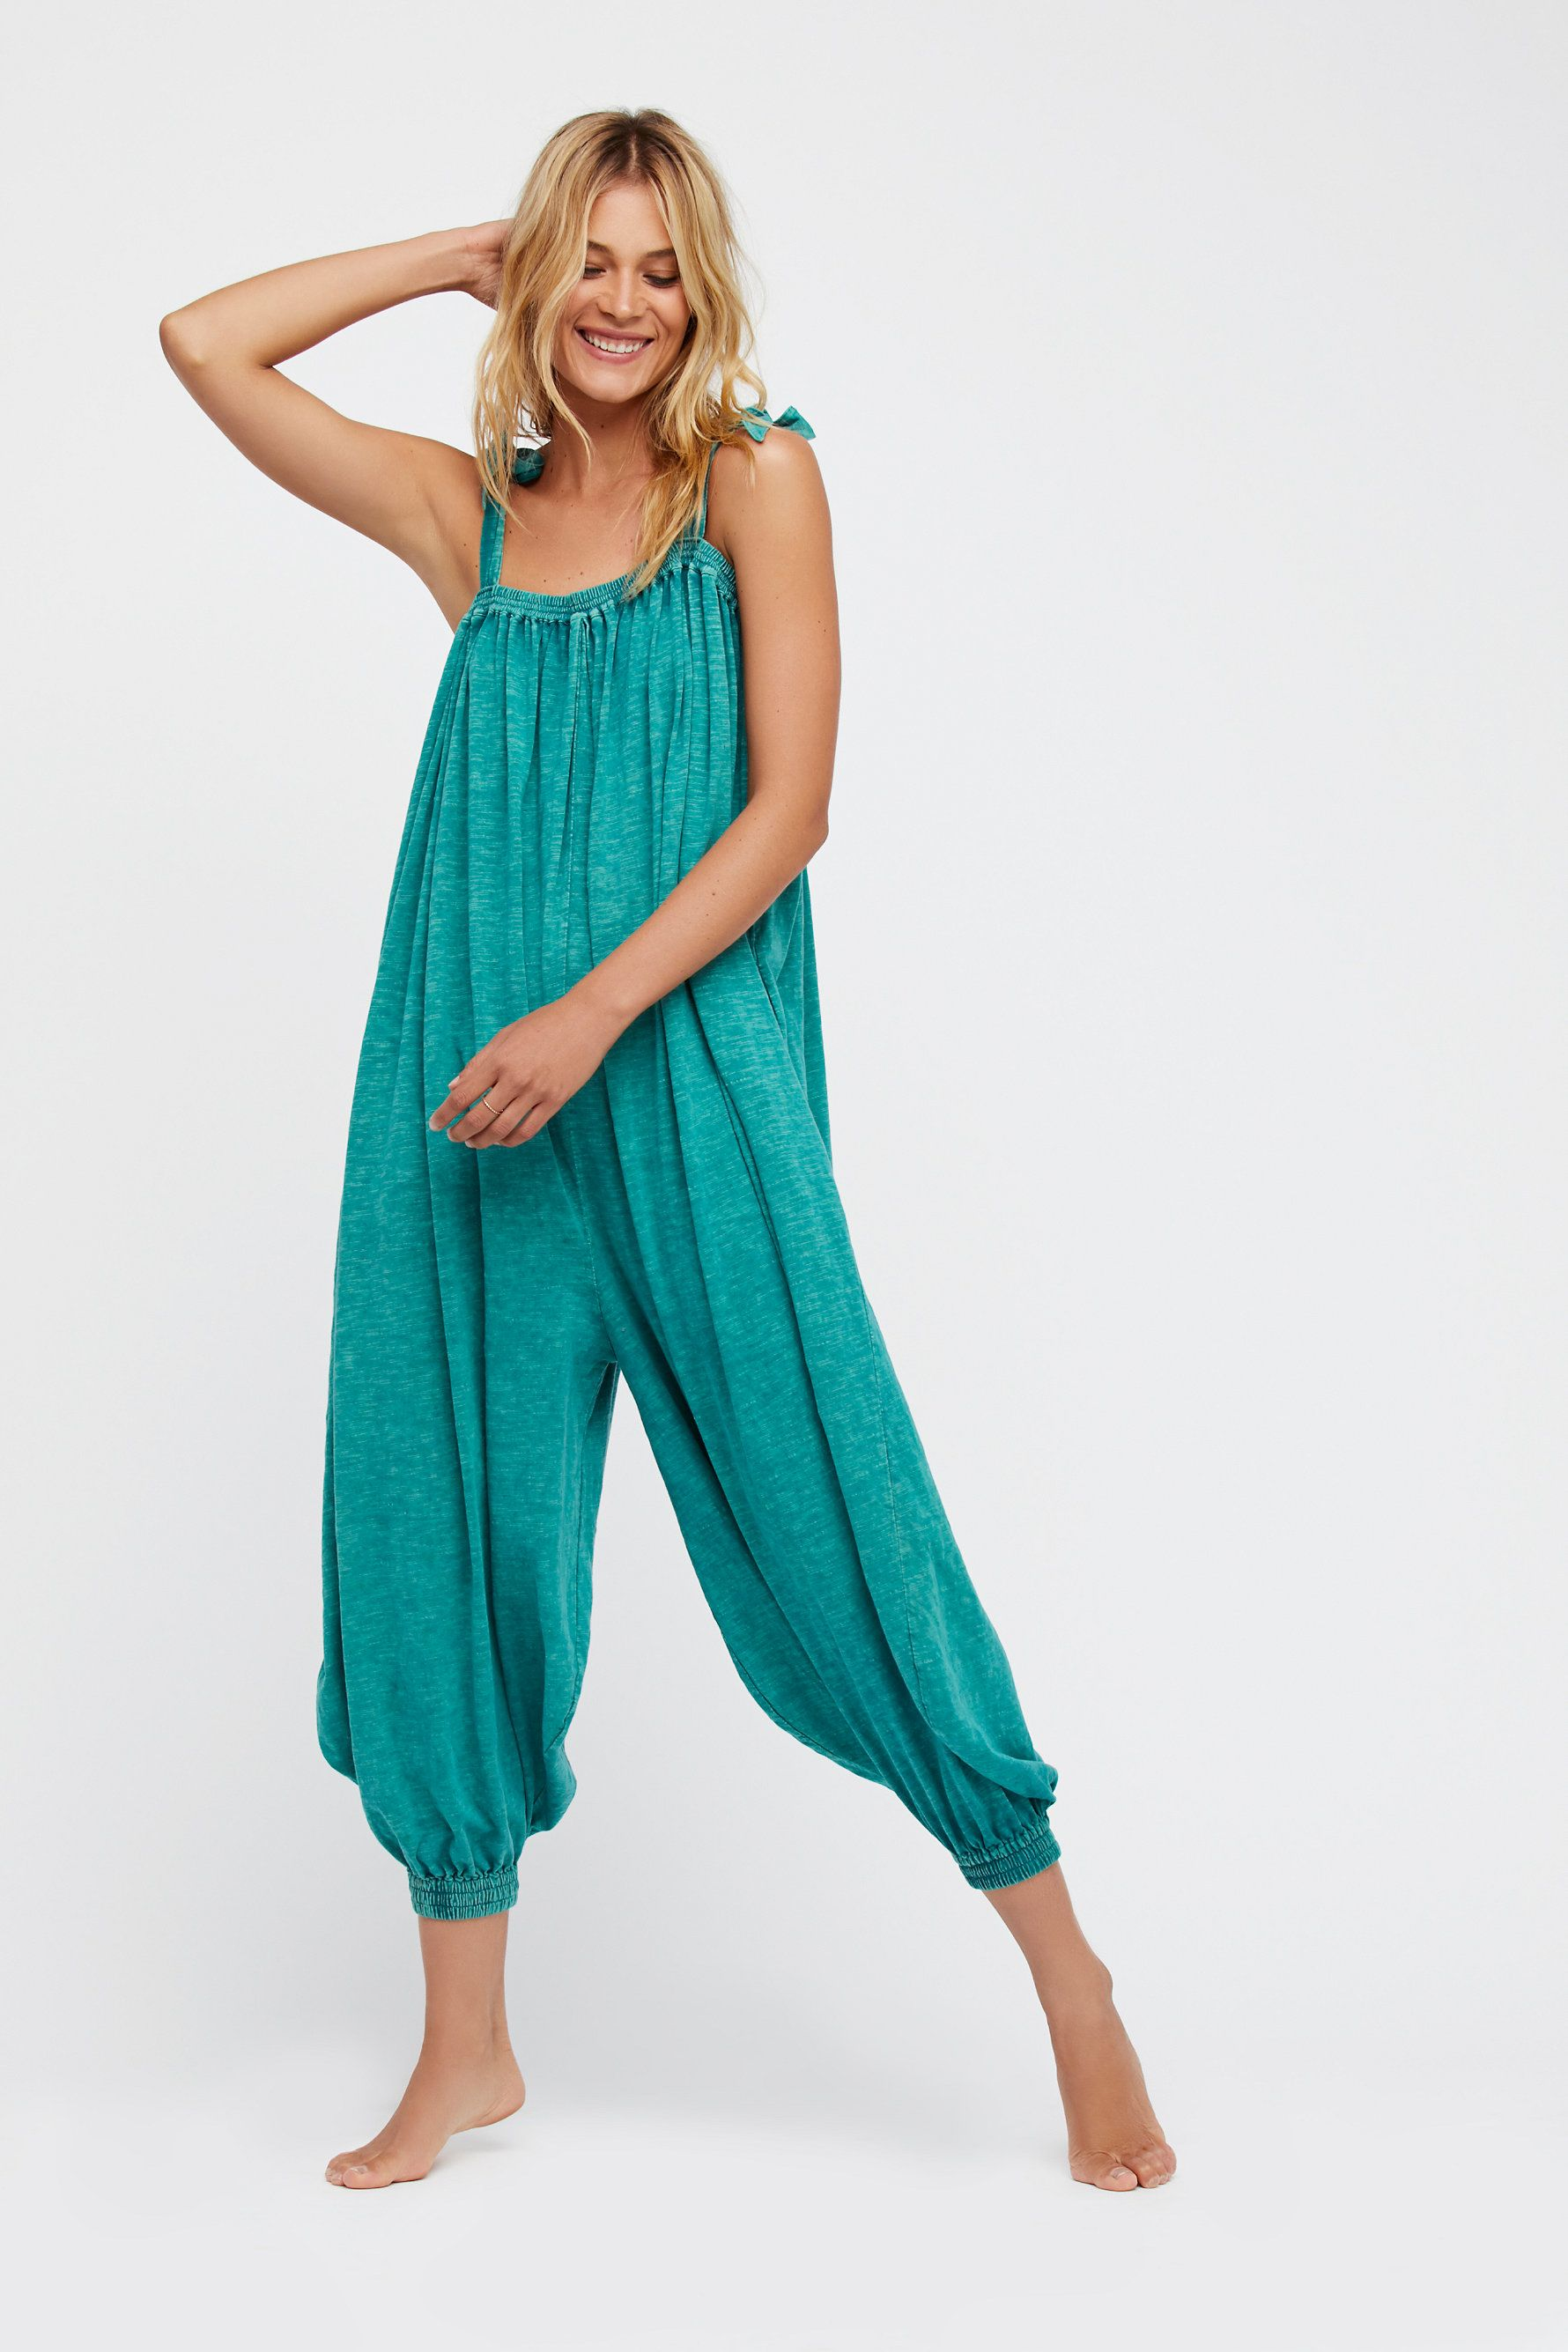 Take It Easy Romper | Oversized, shapeless romper featuring adjustable tie straps and a comfortable cotton fabrication for an effortless look.    * Side pockets   * Elastic at the neckline and ankles for an easy fit